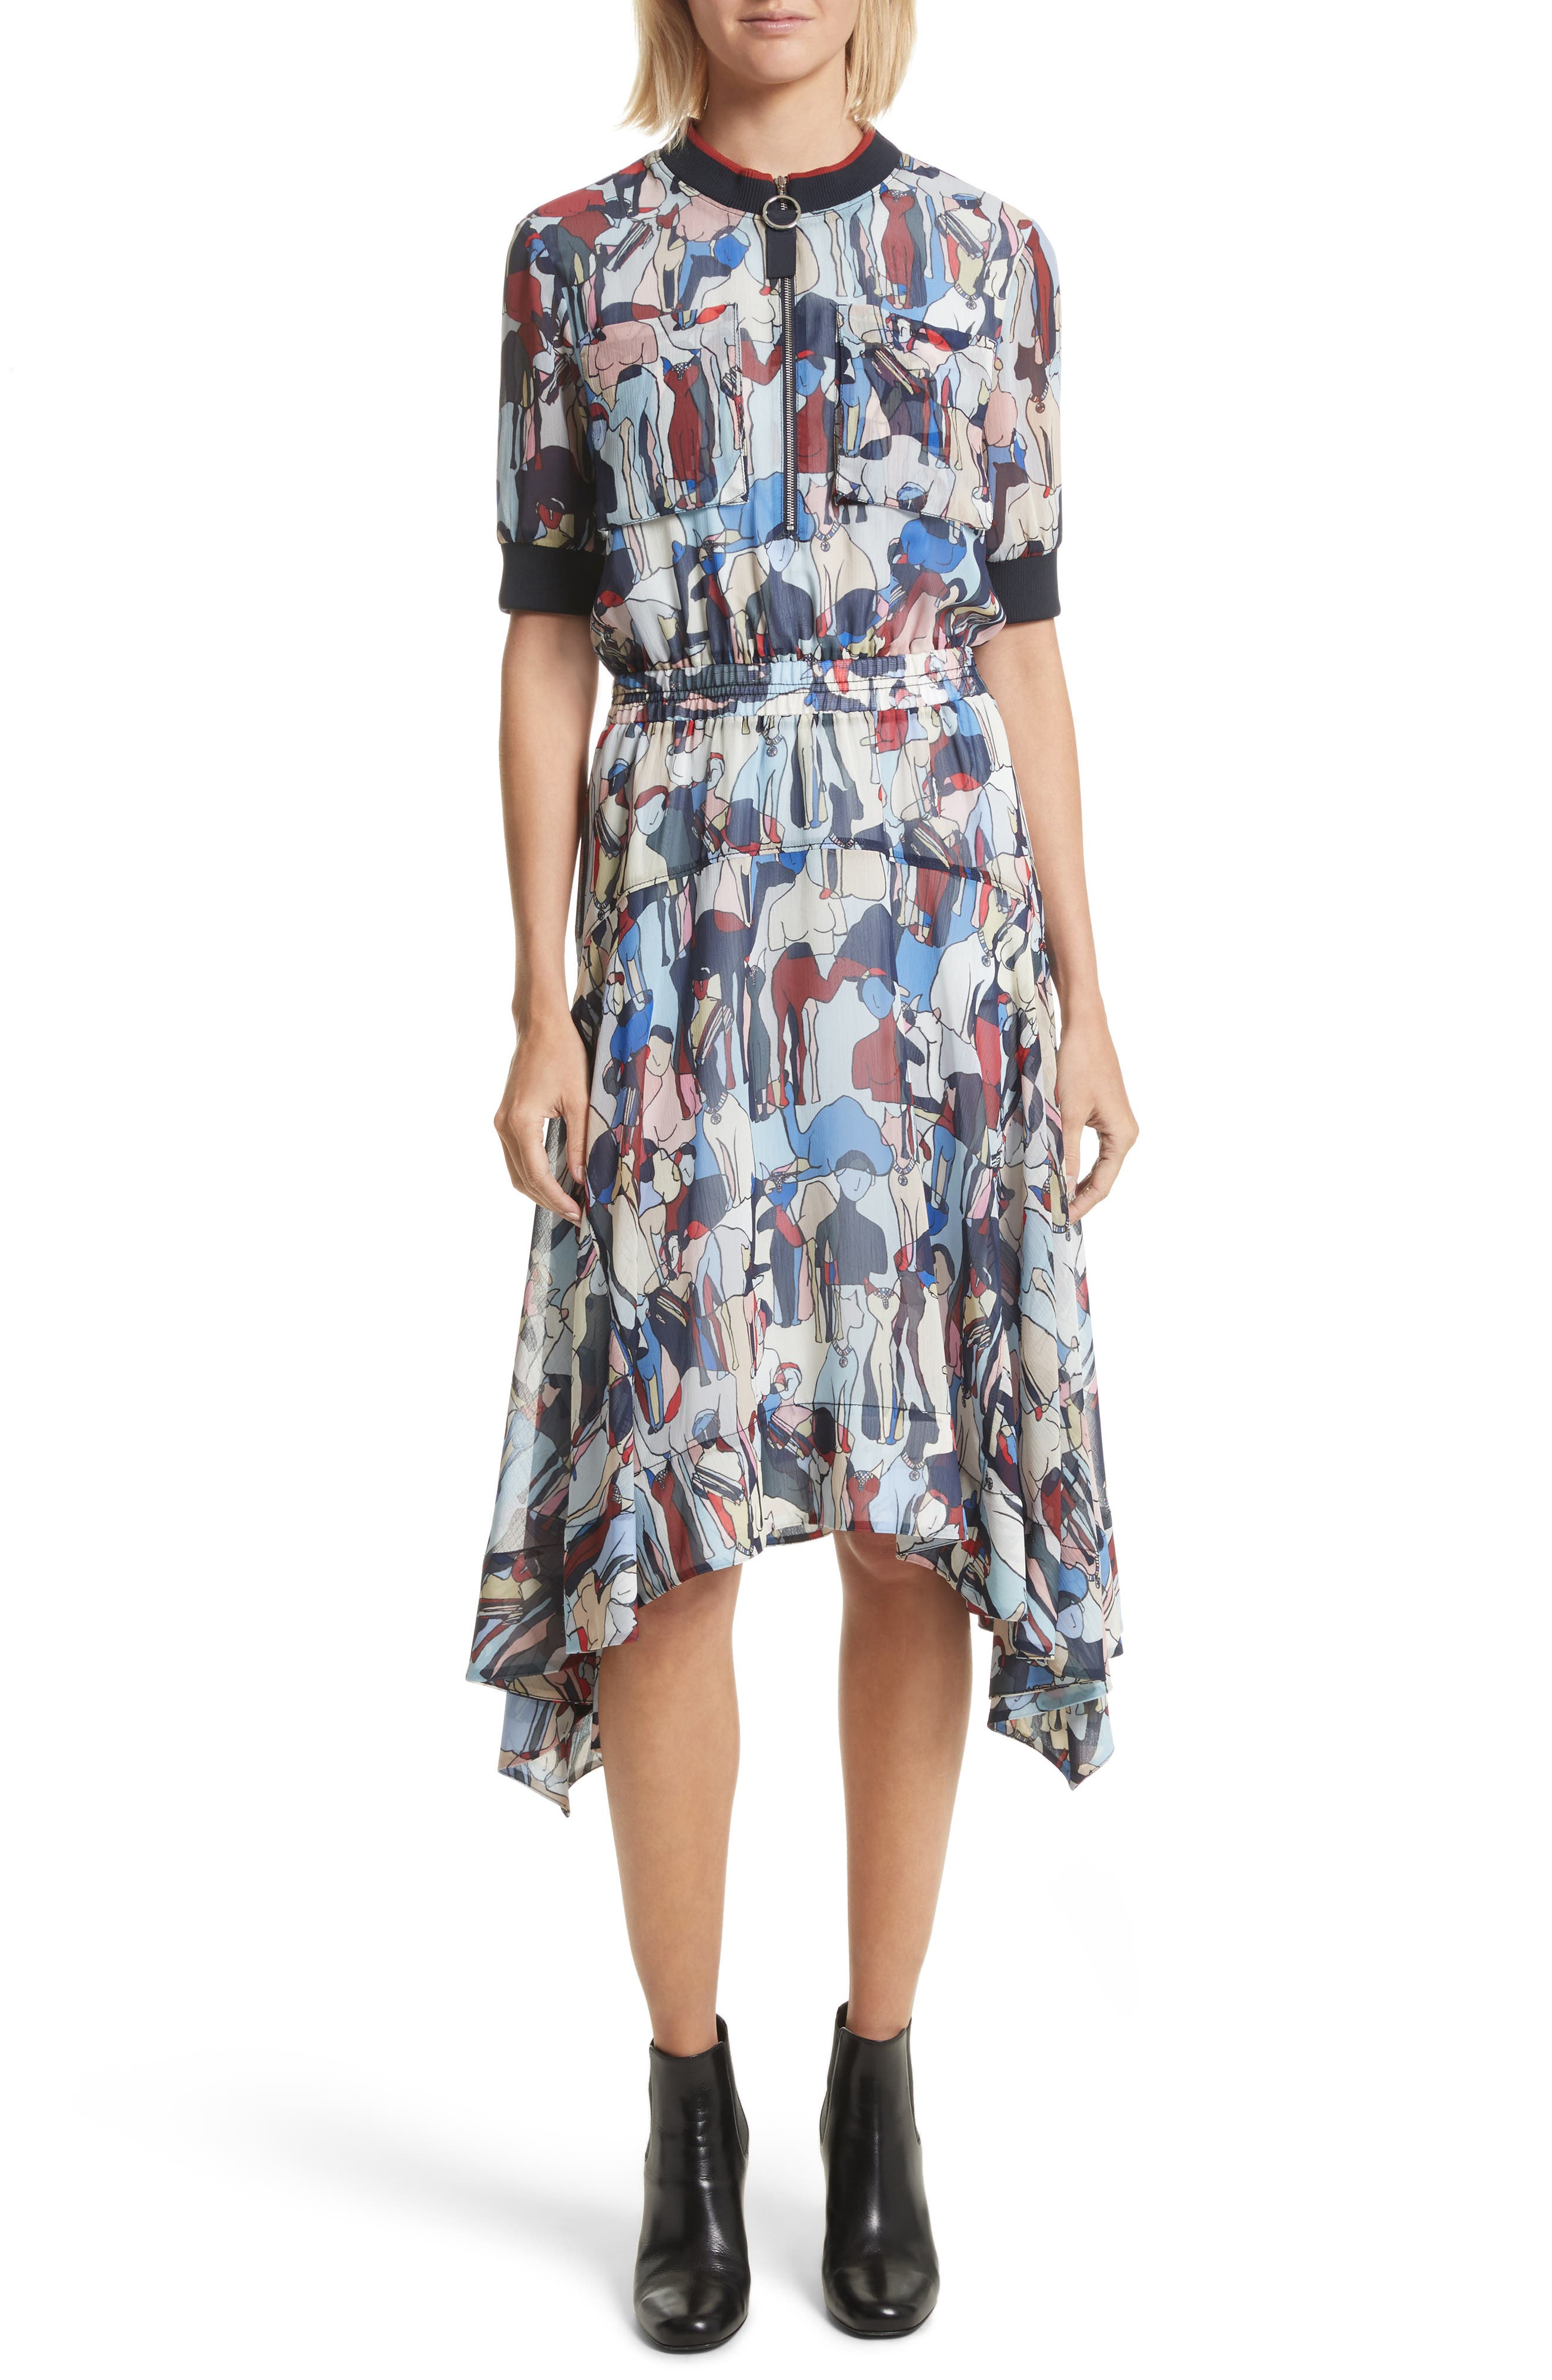 GREY Jason Wu Print Handkerchief Hem Dress